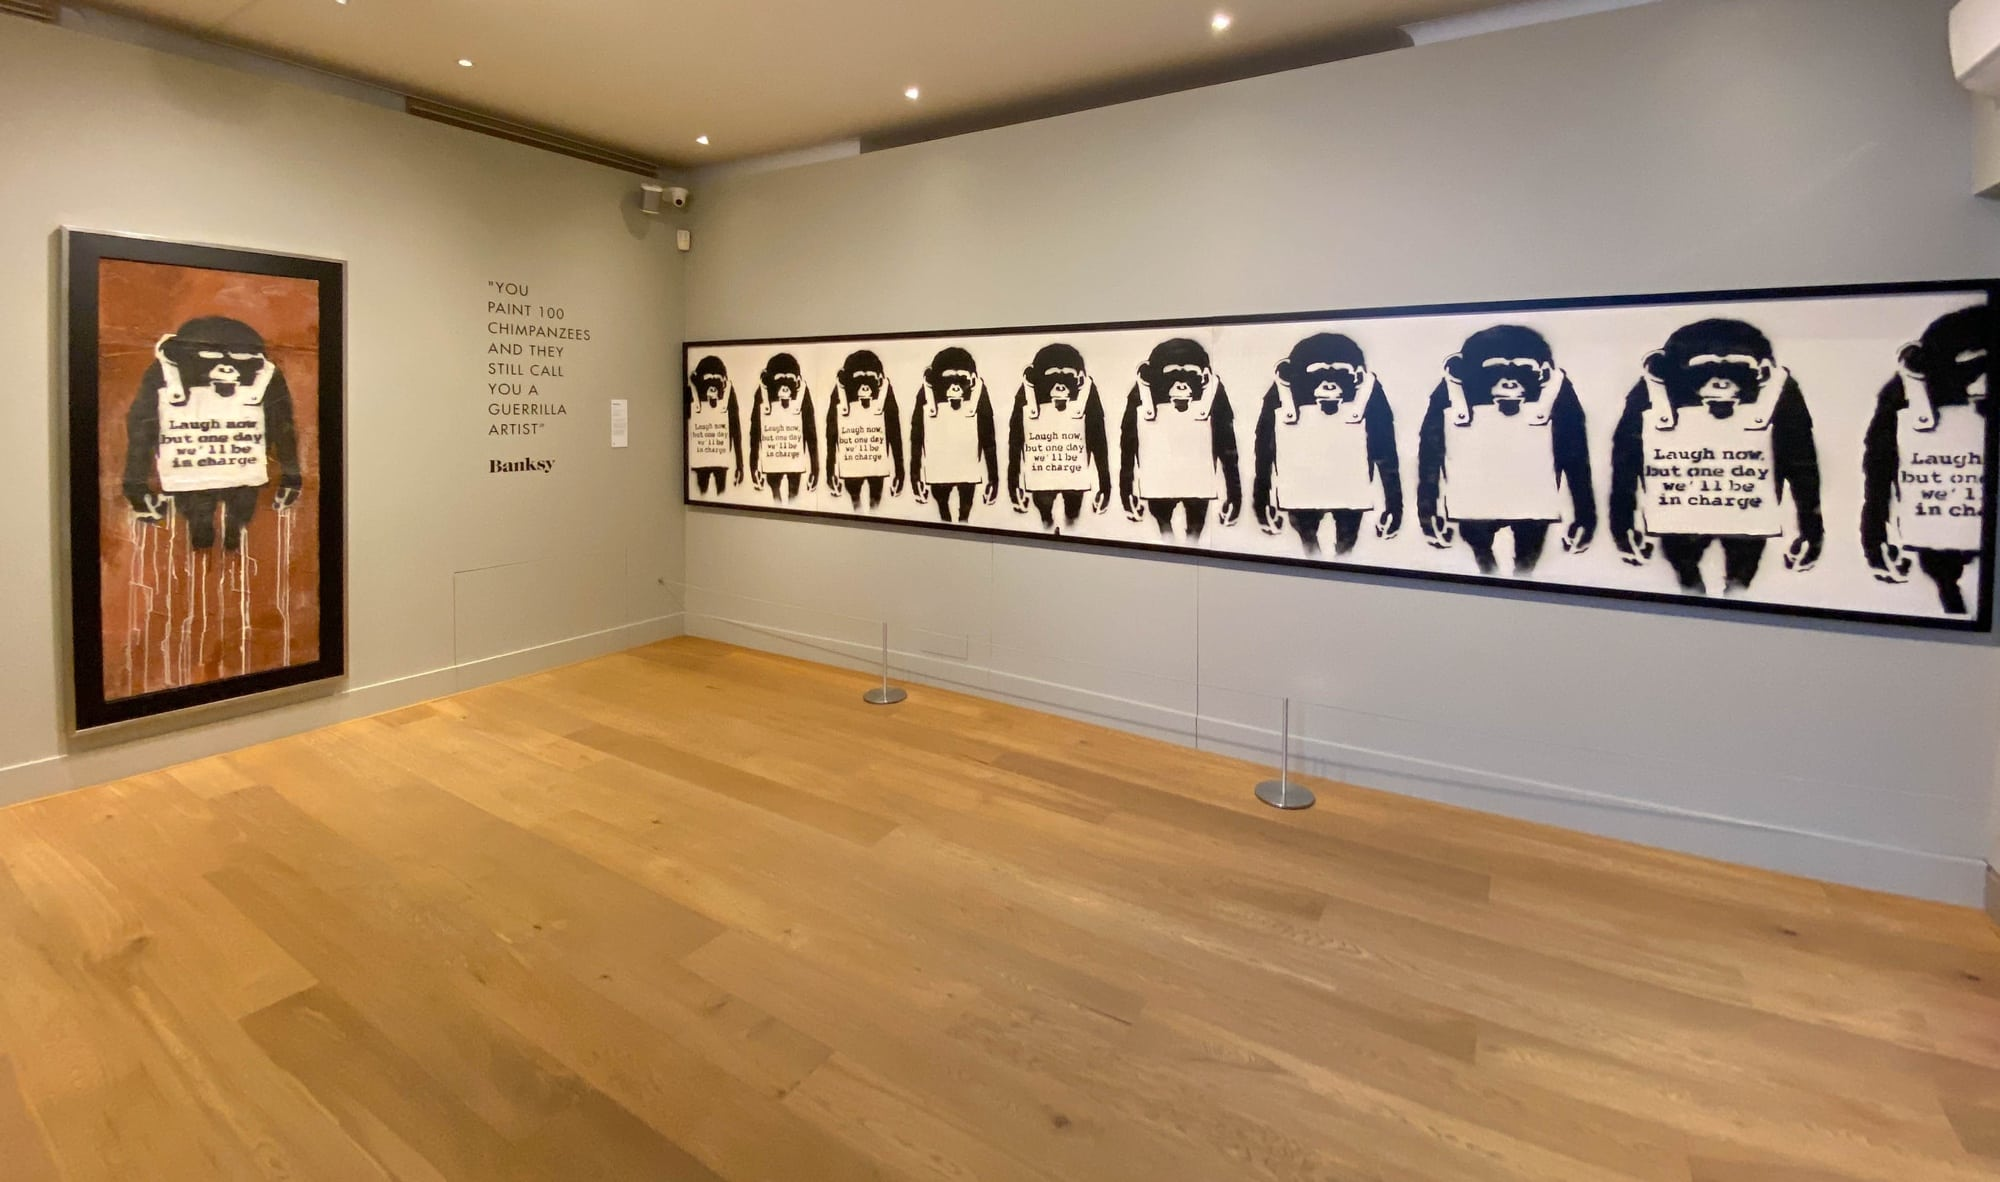 Banksy: Laugh now, but one day we'll be in charge, Moco Museum, Amsterdam